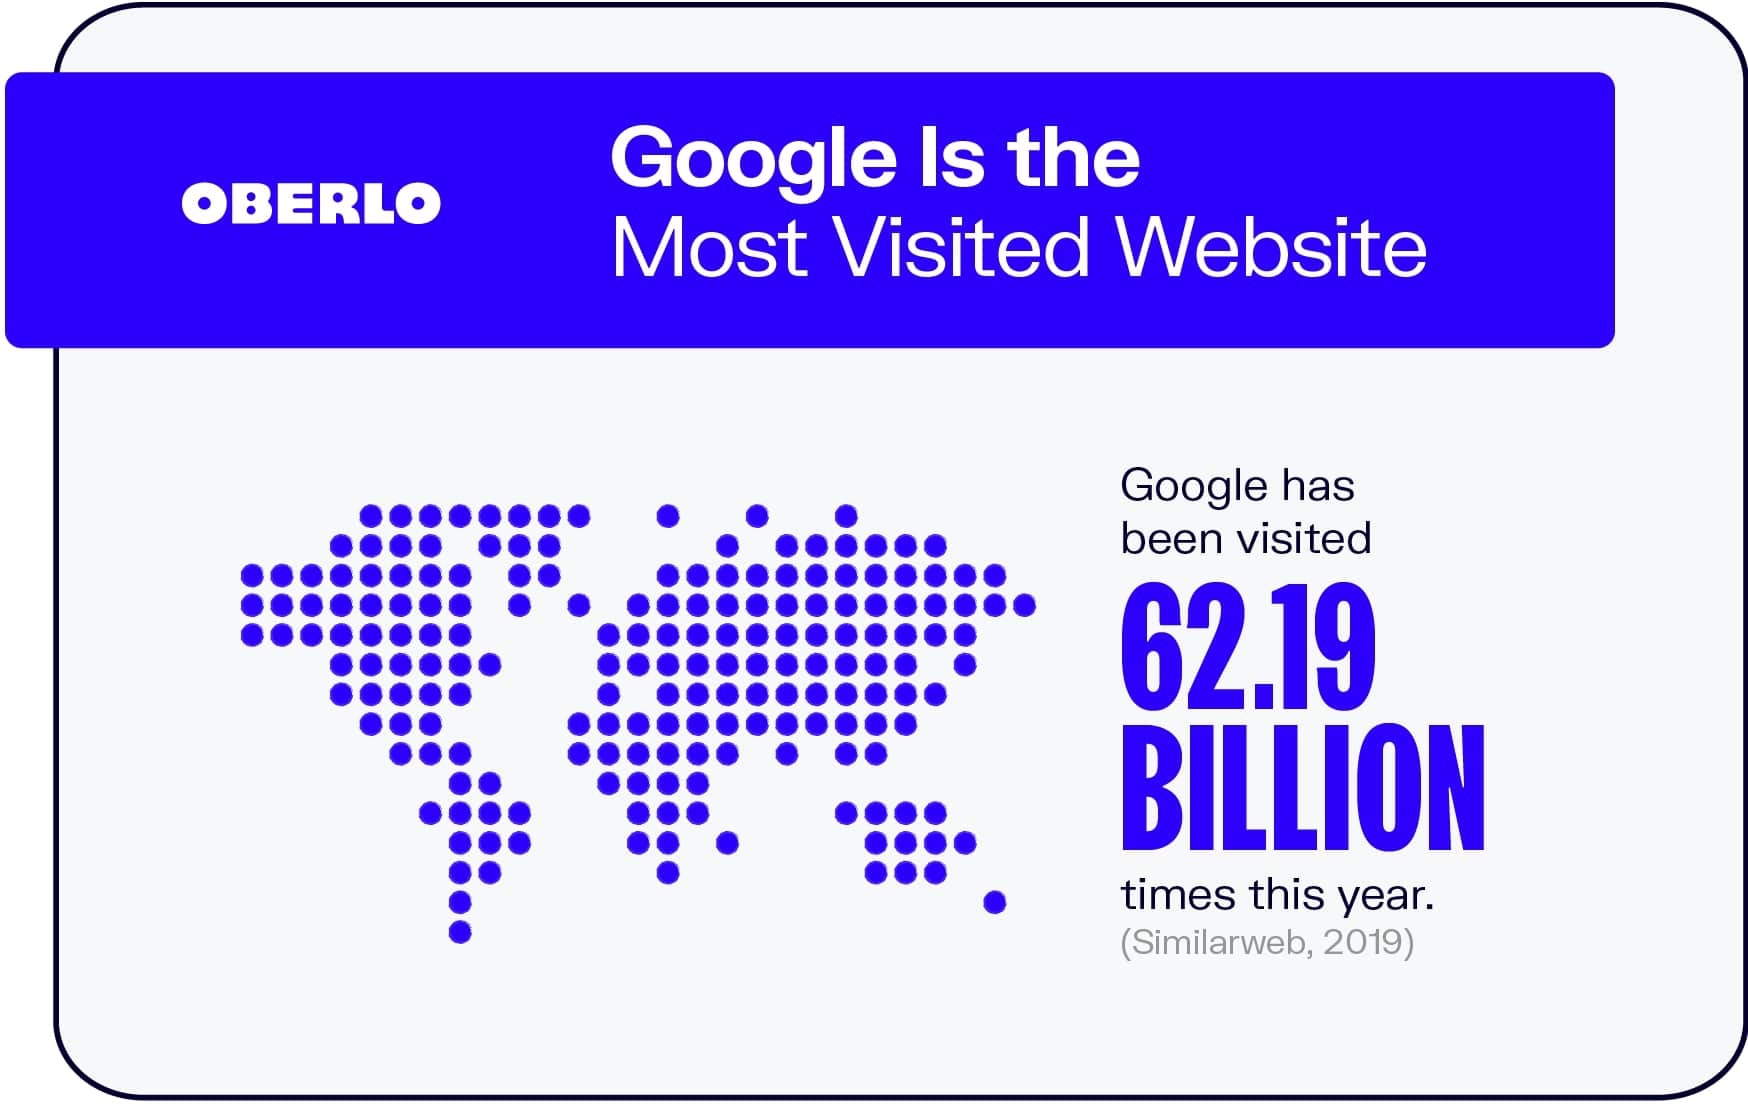 Google Is the Most Visited Website